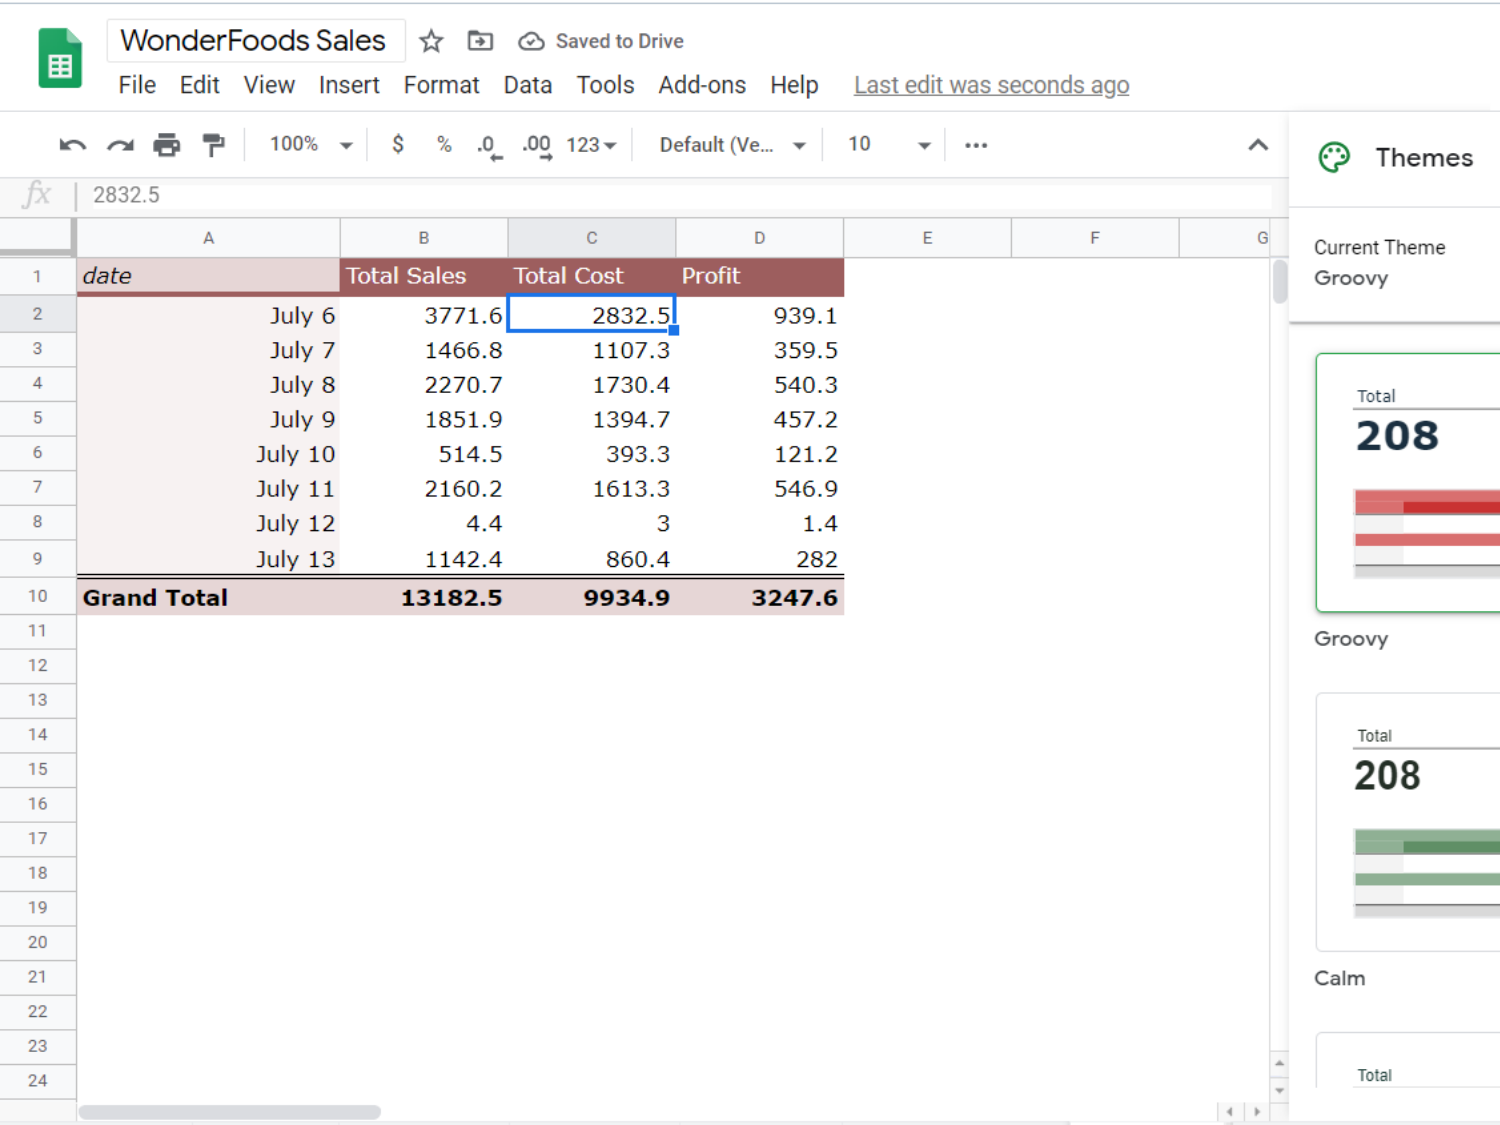 A sheet containing the Pivot Table. Uses Google Sheets' Groovy theme, using shades of red to highlight the column labels, the row labels (the individual dates from July 6 to July 13), and the Grand Total.